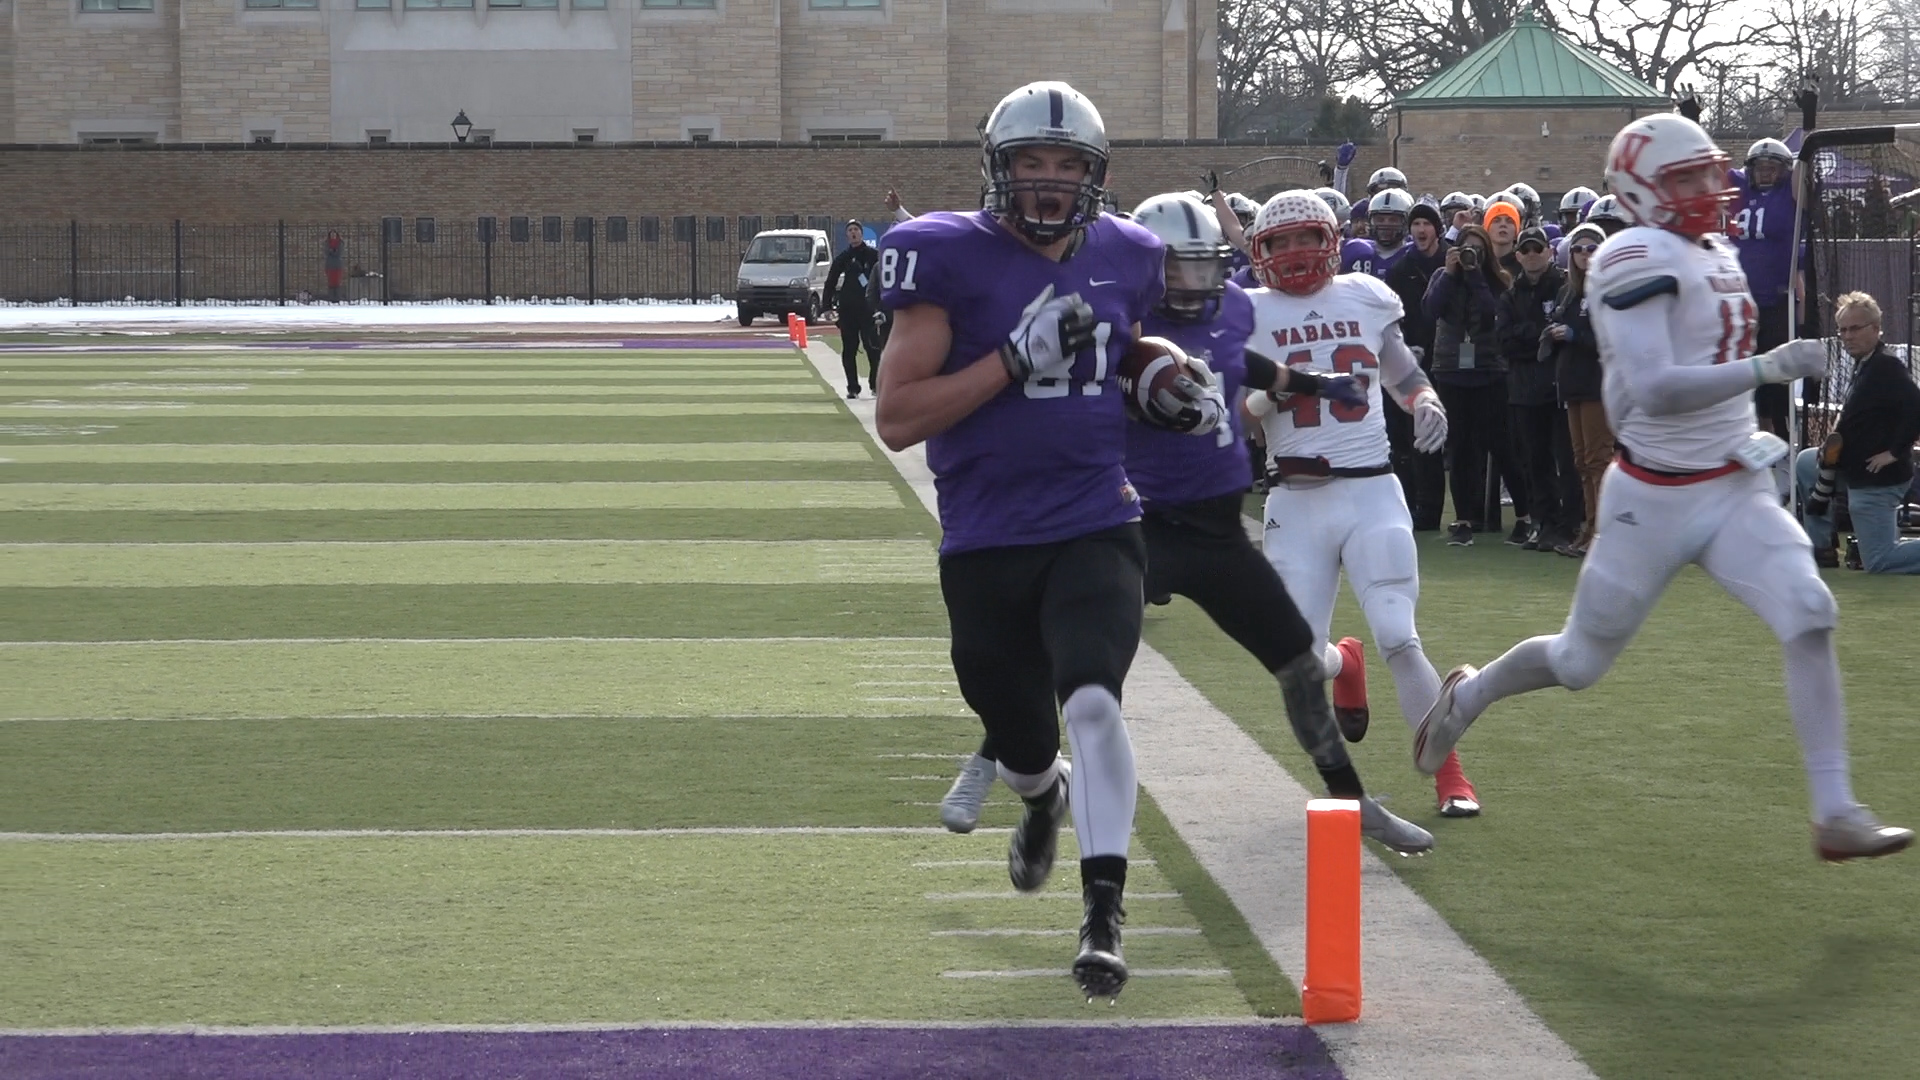 Video: Tommies whip Wabash, advance to semifinals